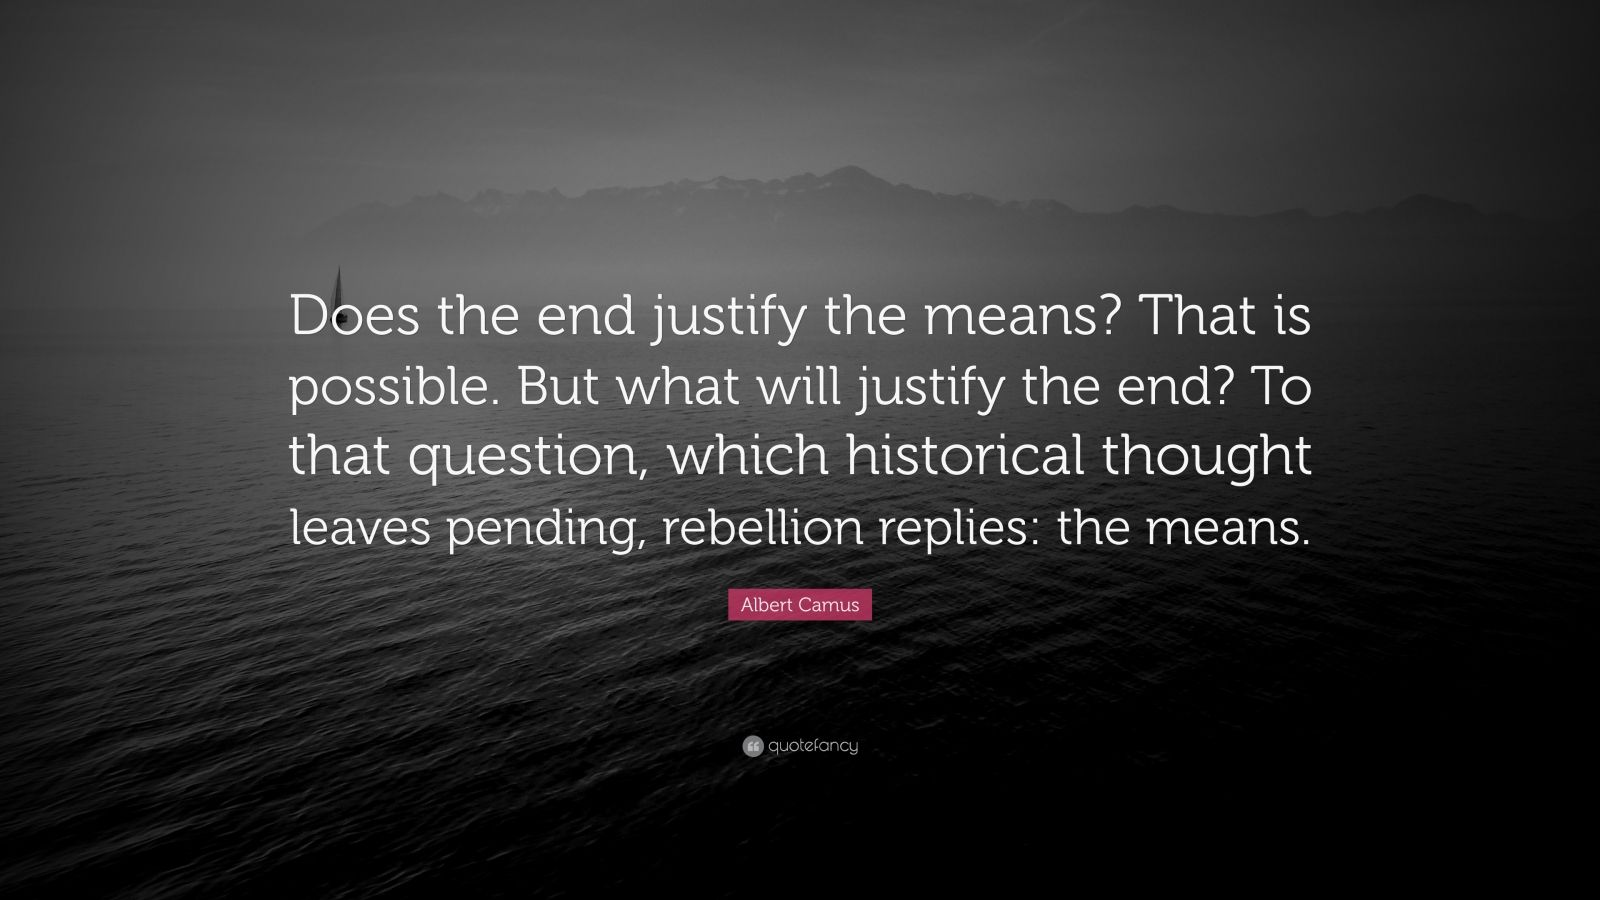 """Albert Camus Quote: """"Does the end justify the means? That is possible. But what will justify the end? To that question, which historical thought leaves pending, rebellion replies: the means."""""""